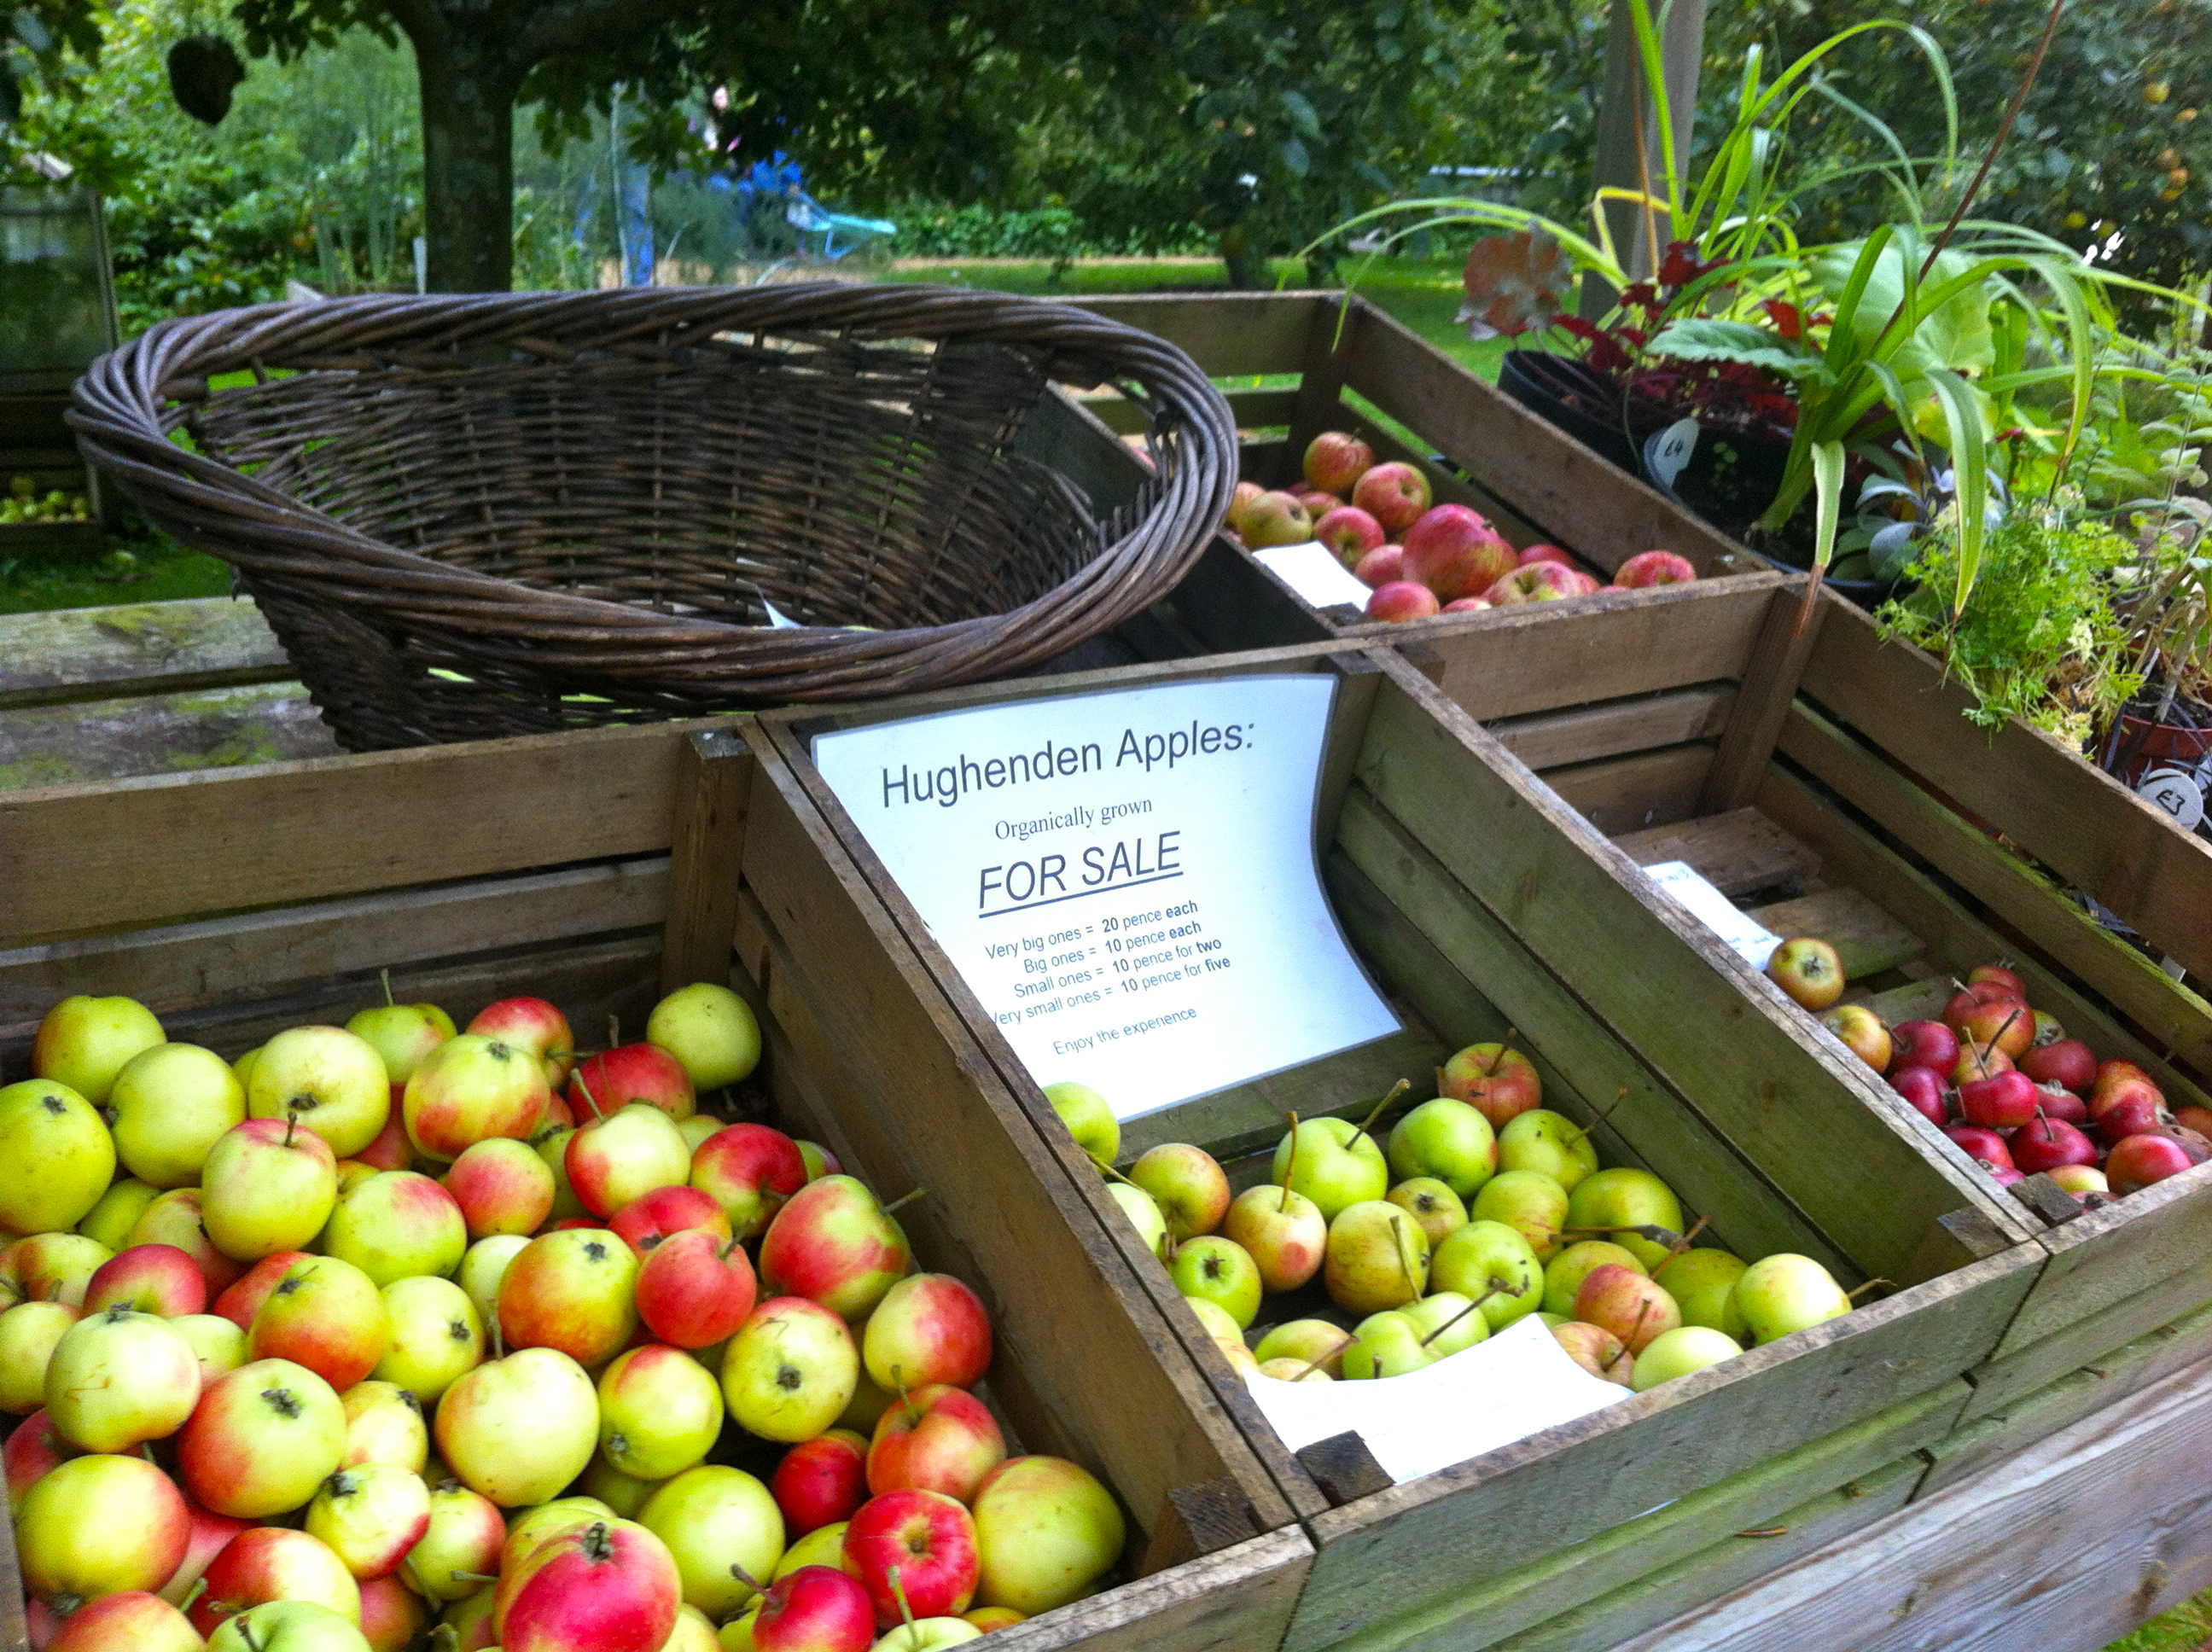 Apple Day at Hughenden Manor